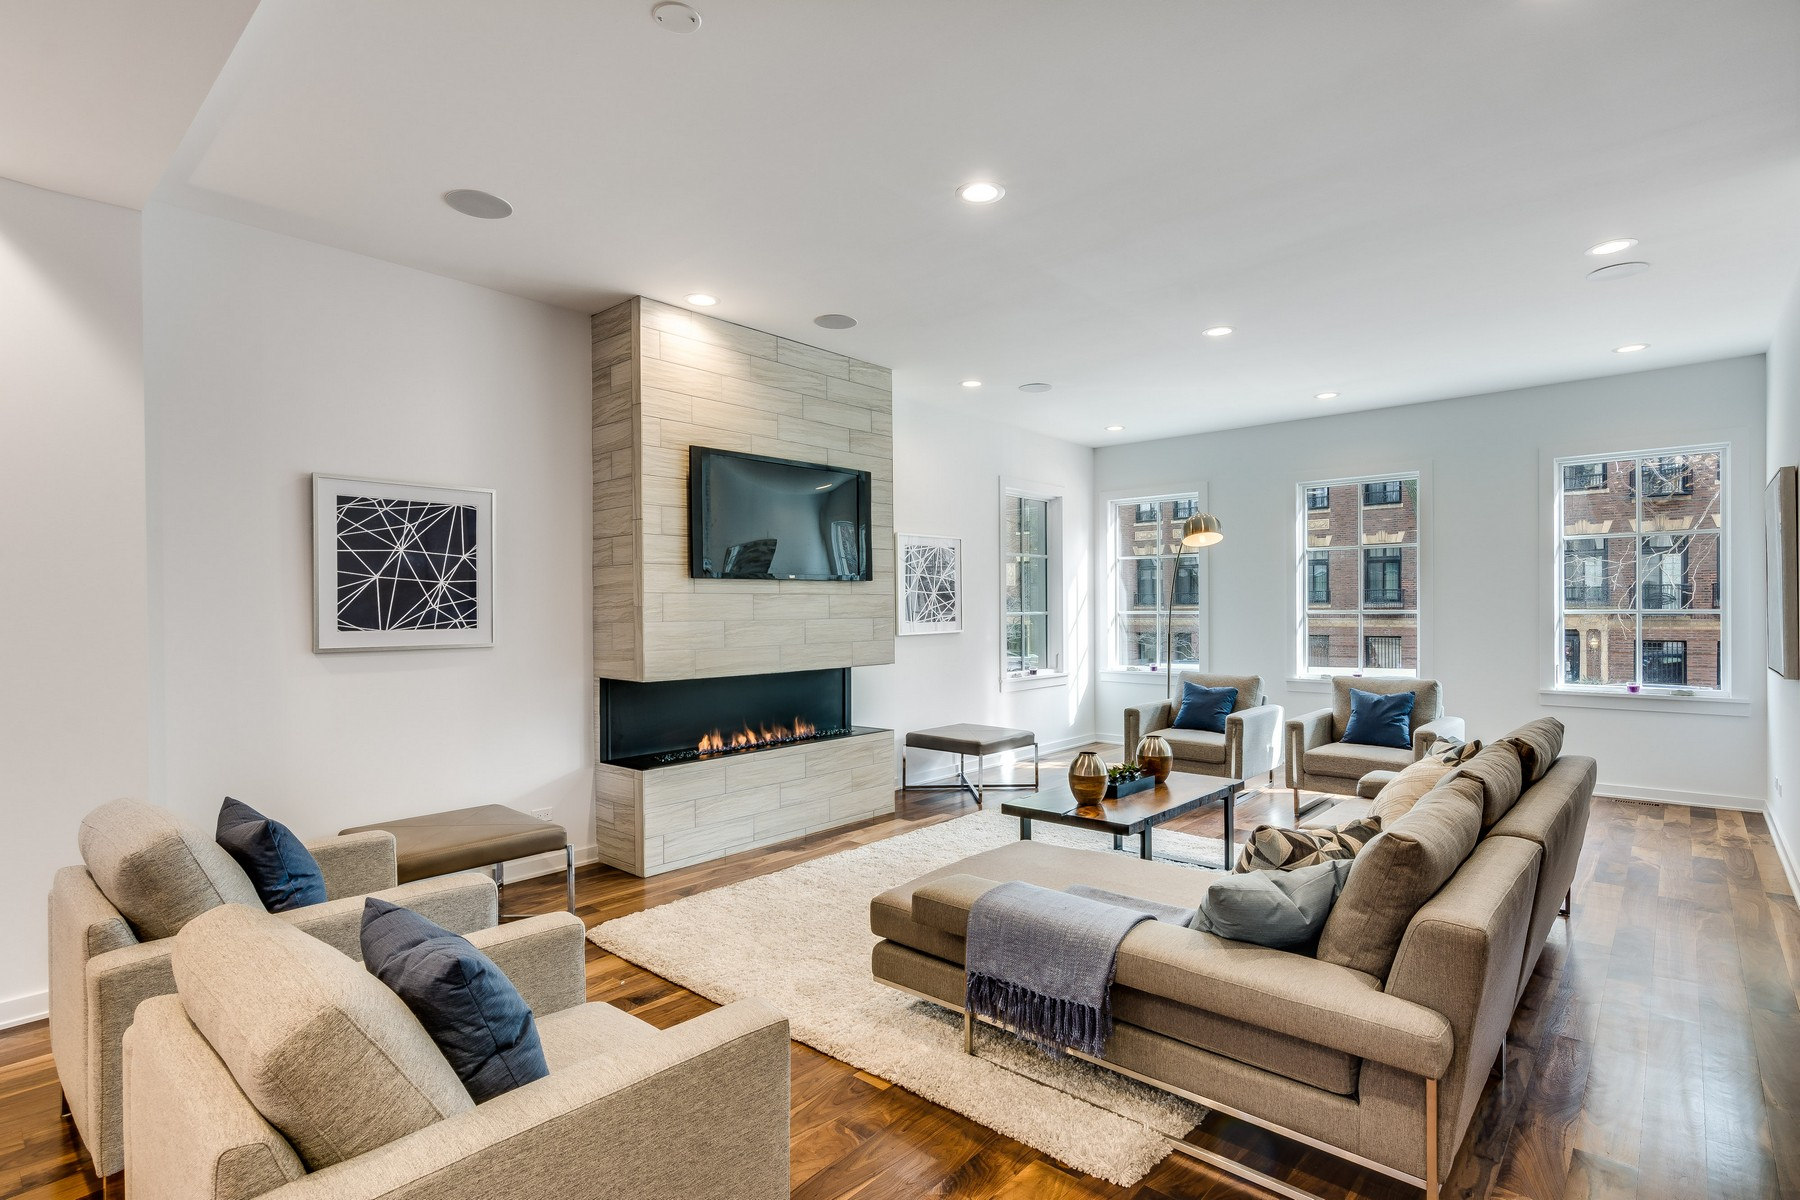 Single Family Home for Sale at Lavish New Construction in a Historic Area 22 E Elm Street Chicago, Illinois 60611 United States